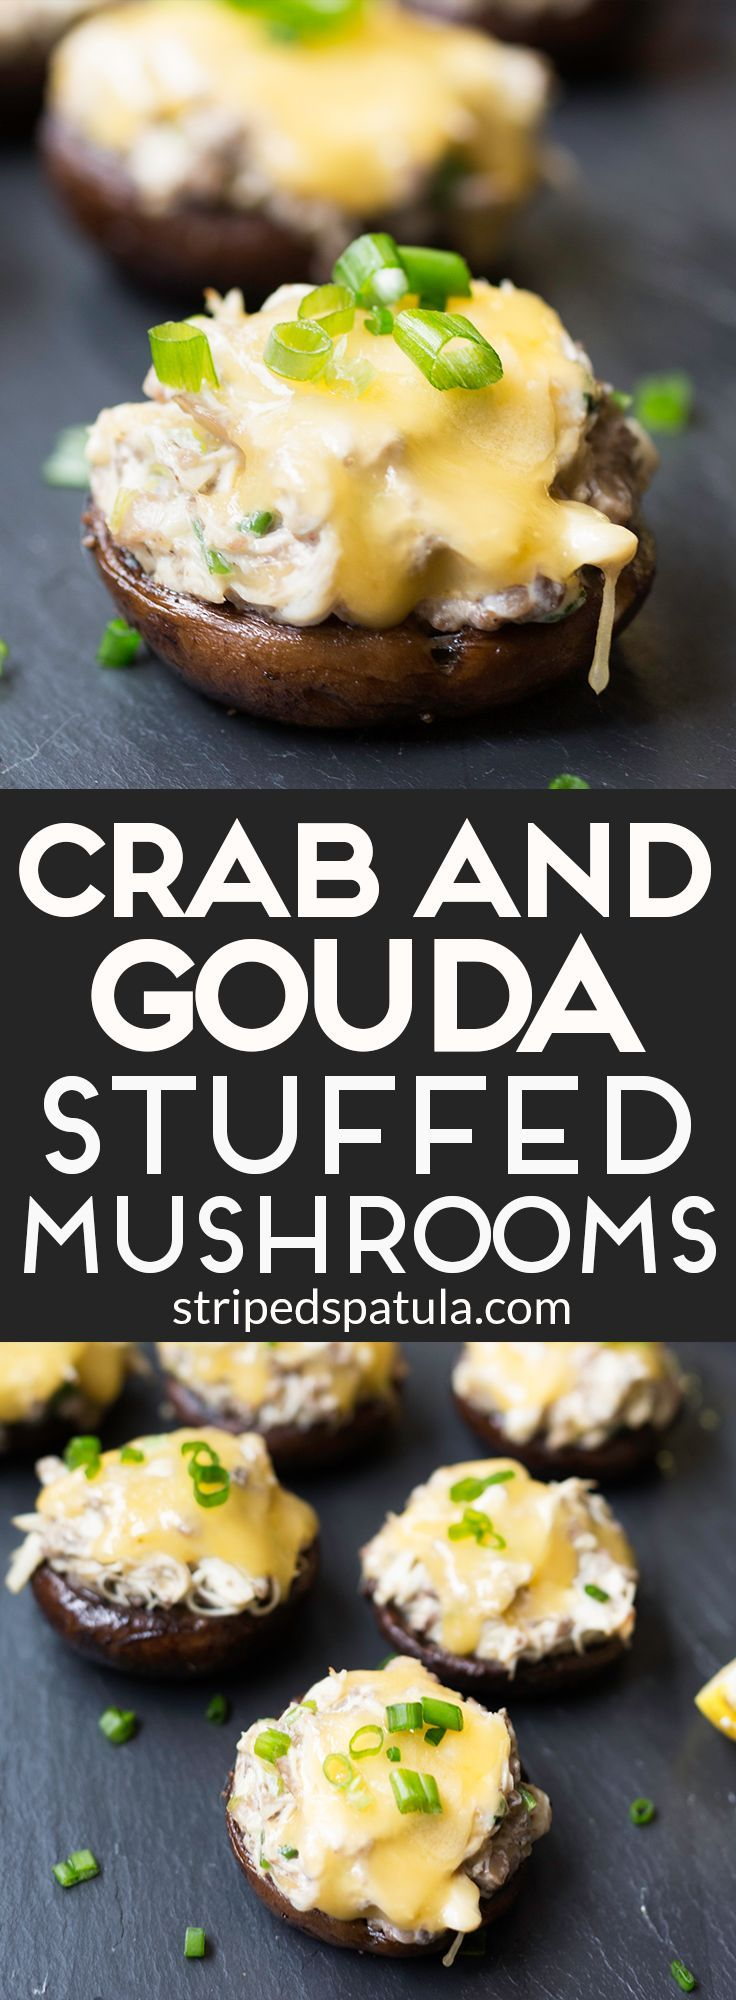 Rich Crab and Gouda Stuffed Mushrooms, with sweet lump crabmeat, garlic, and Dijon, are a perfect appetizer or side dish for any celebration.